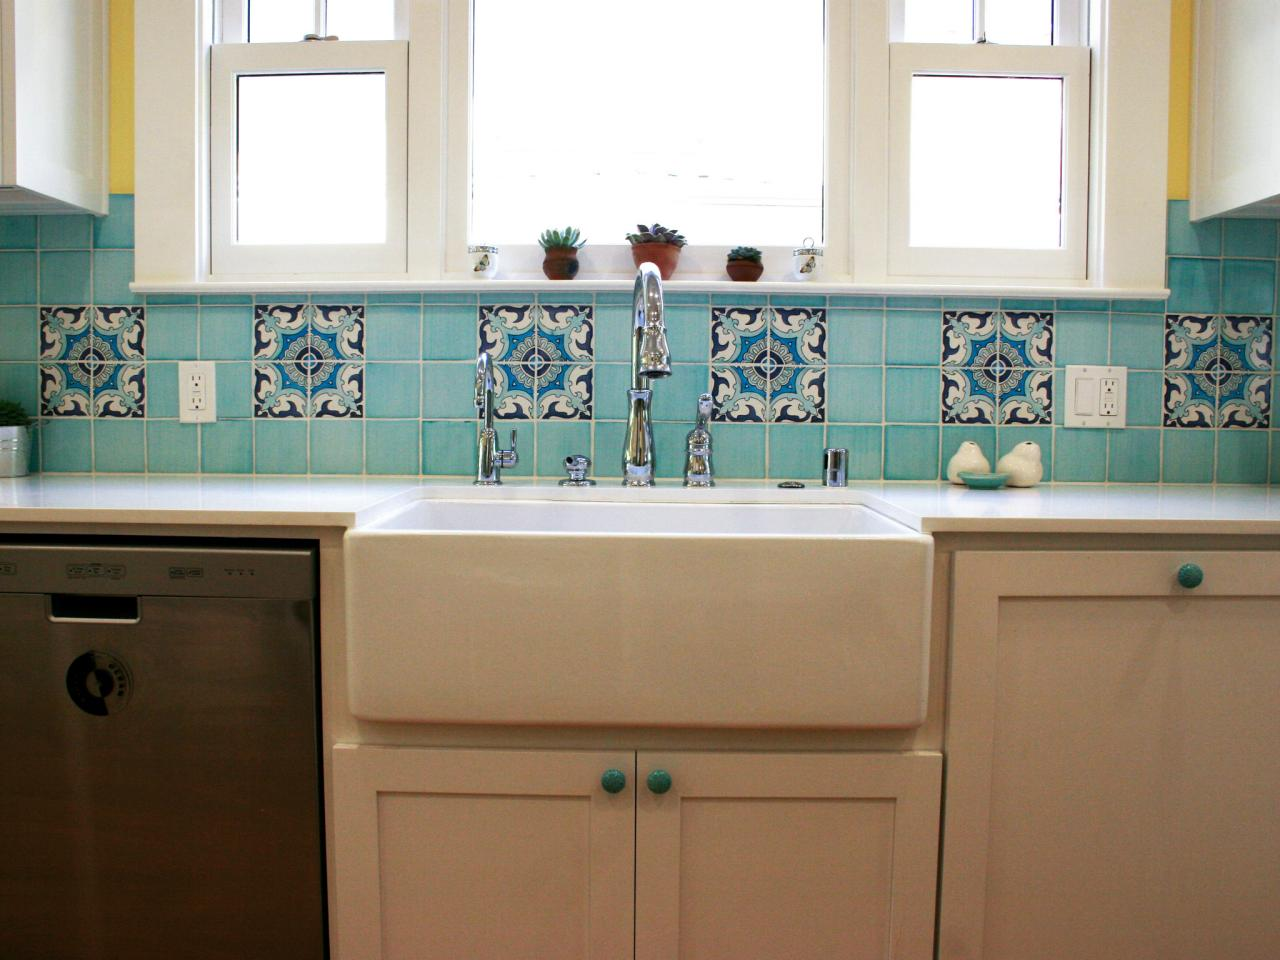 Ceramic tile backsplashes pictures ideas tips from hgtv hgtv ceramic tile backsplashes dailygadgetfo Image collections